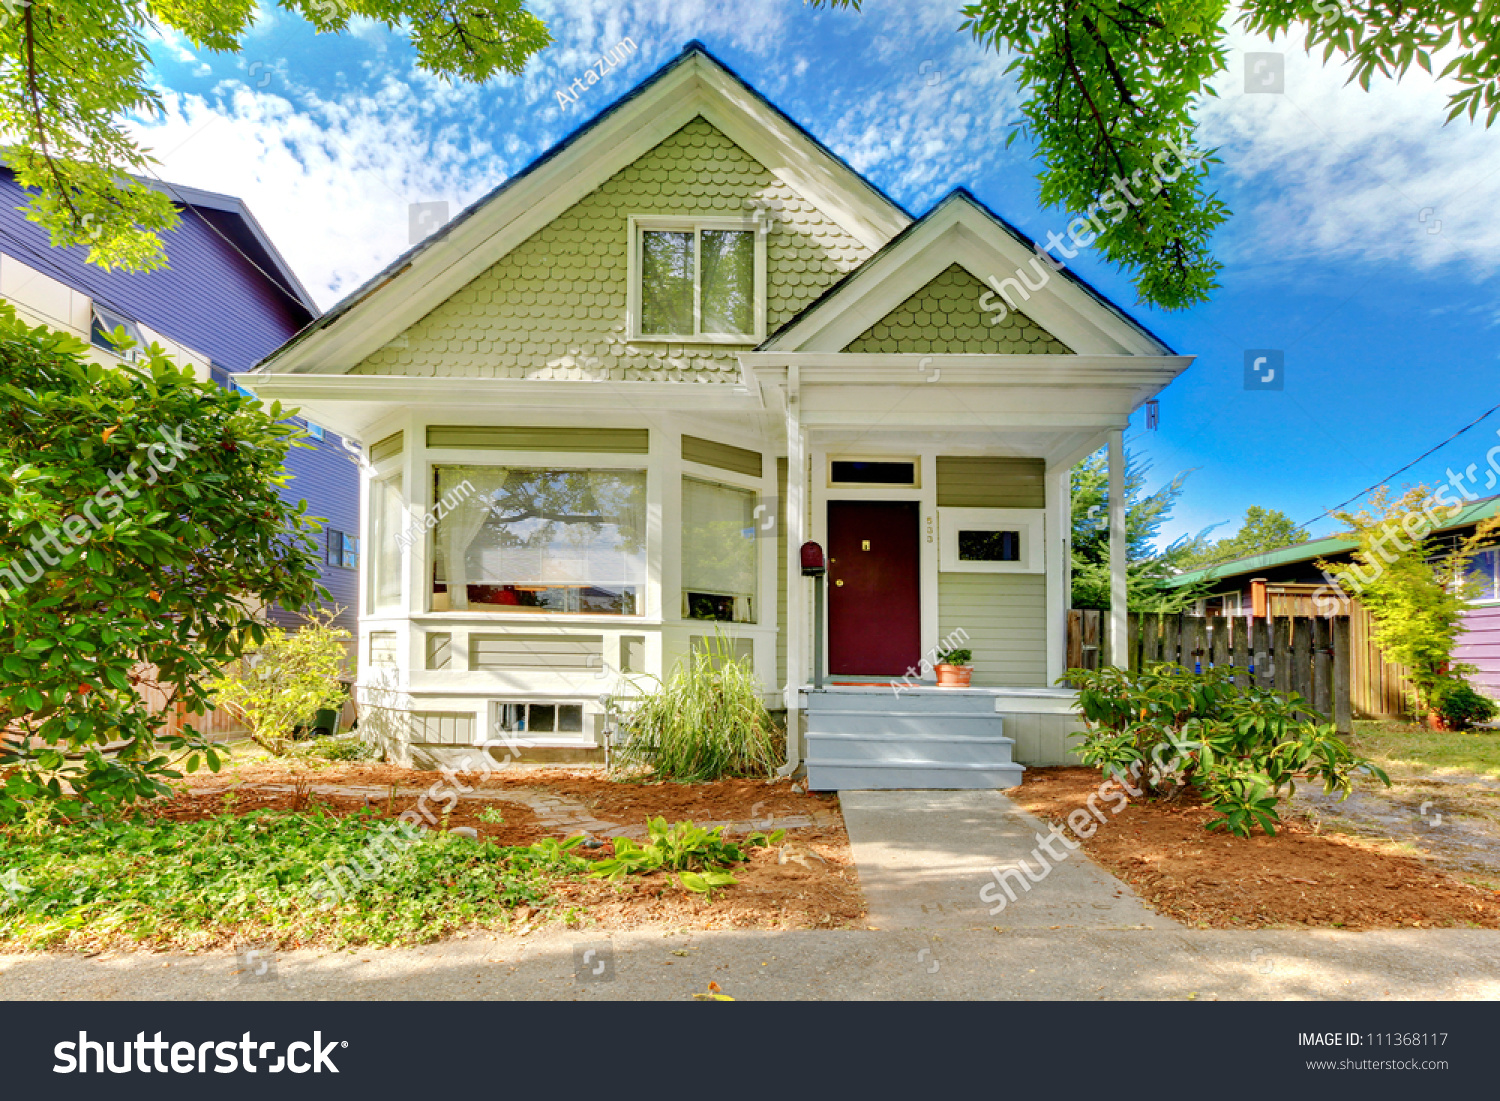 Small Cute Craftsman American House Green Stock Photo